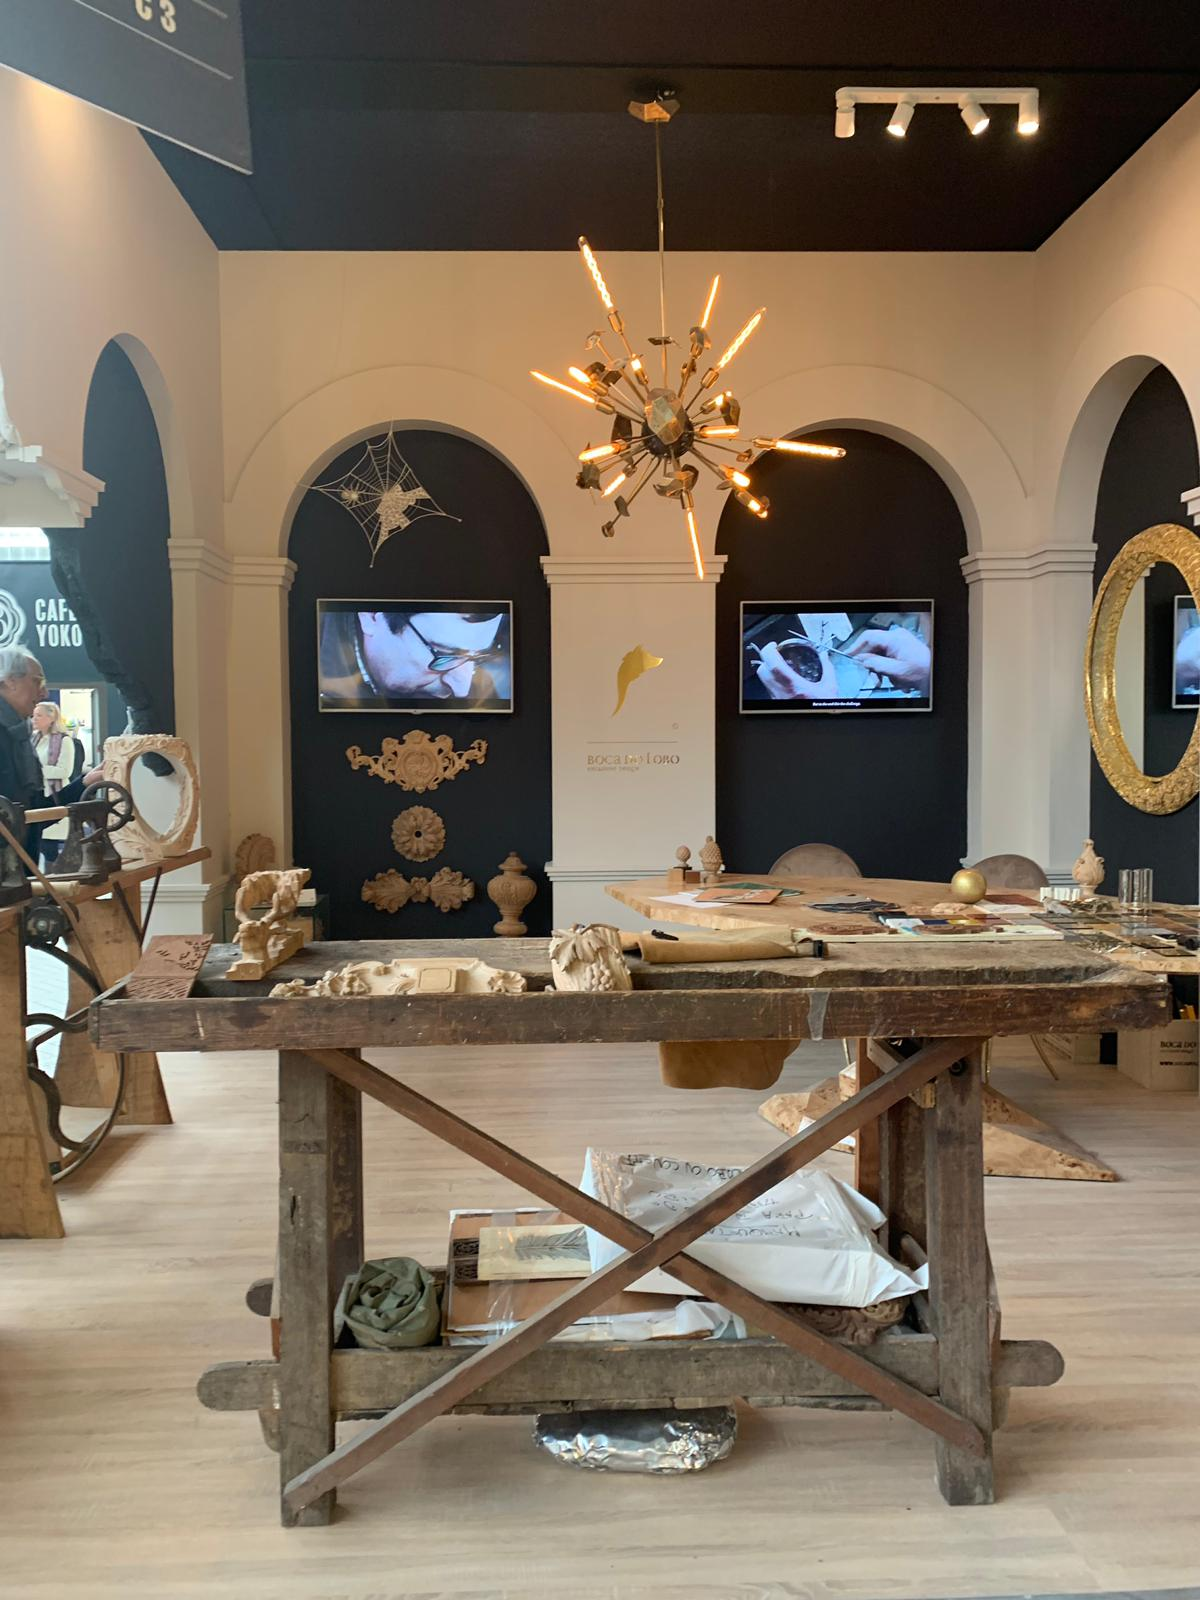 Maison et Objet2019 – First Highlights from the First Day maison et objet2019 Maison et Objet2019 – First Highlights from the First Day Maison et Objet 2019     First Highlights from the First Day 10